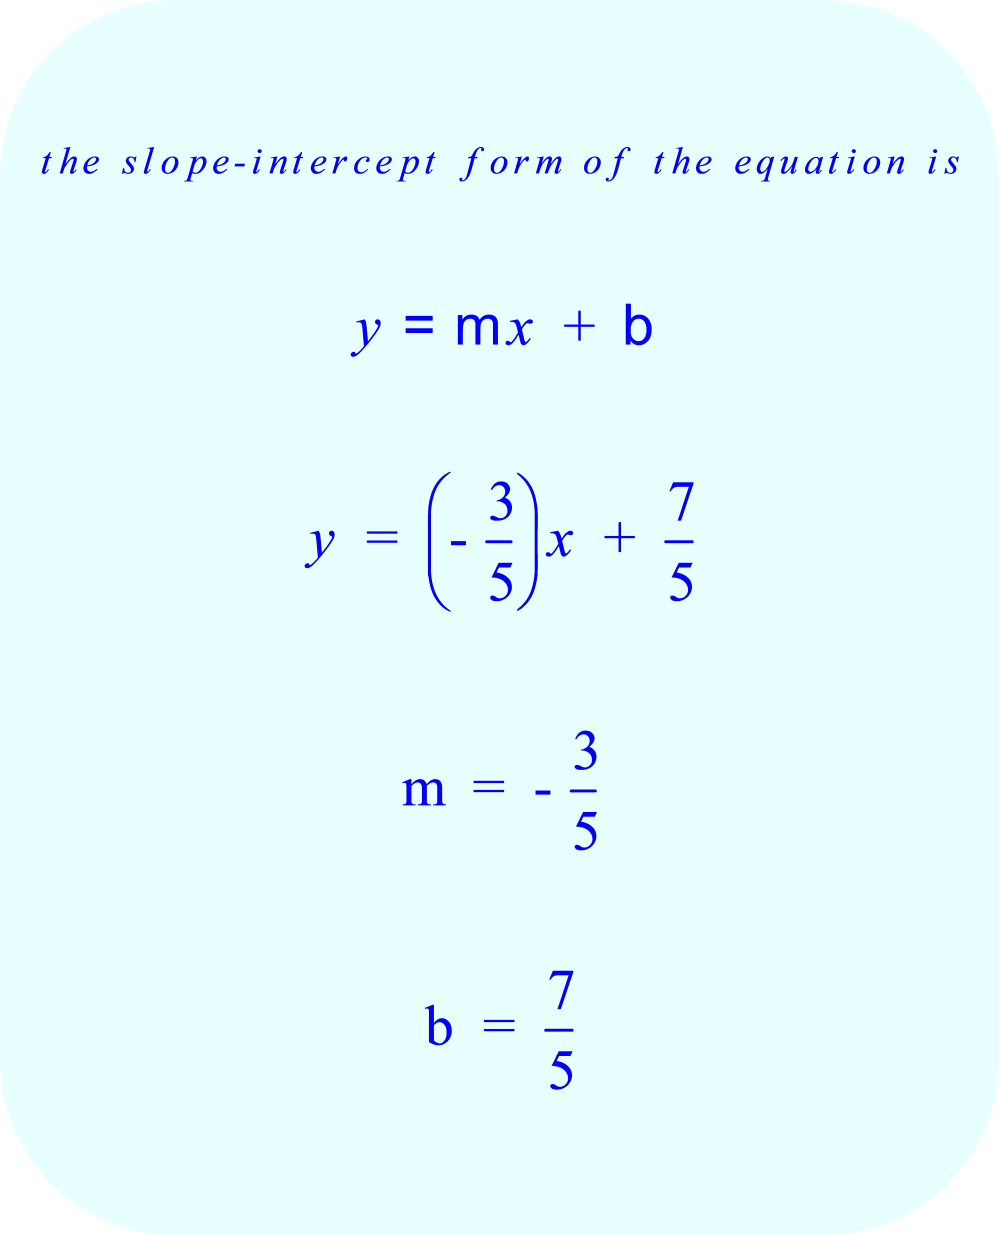 the slope-intercept form of the equation